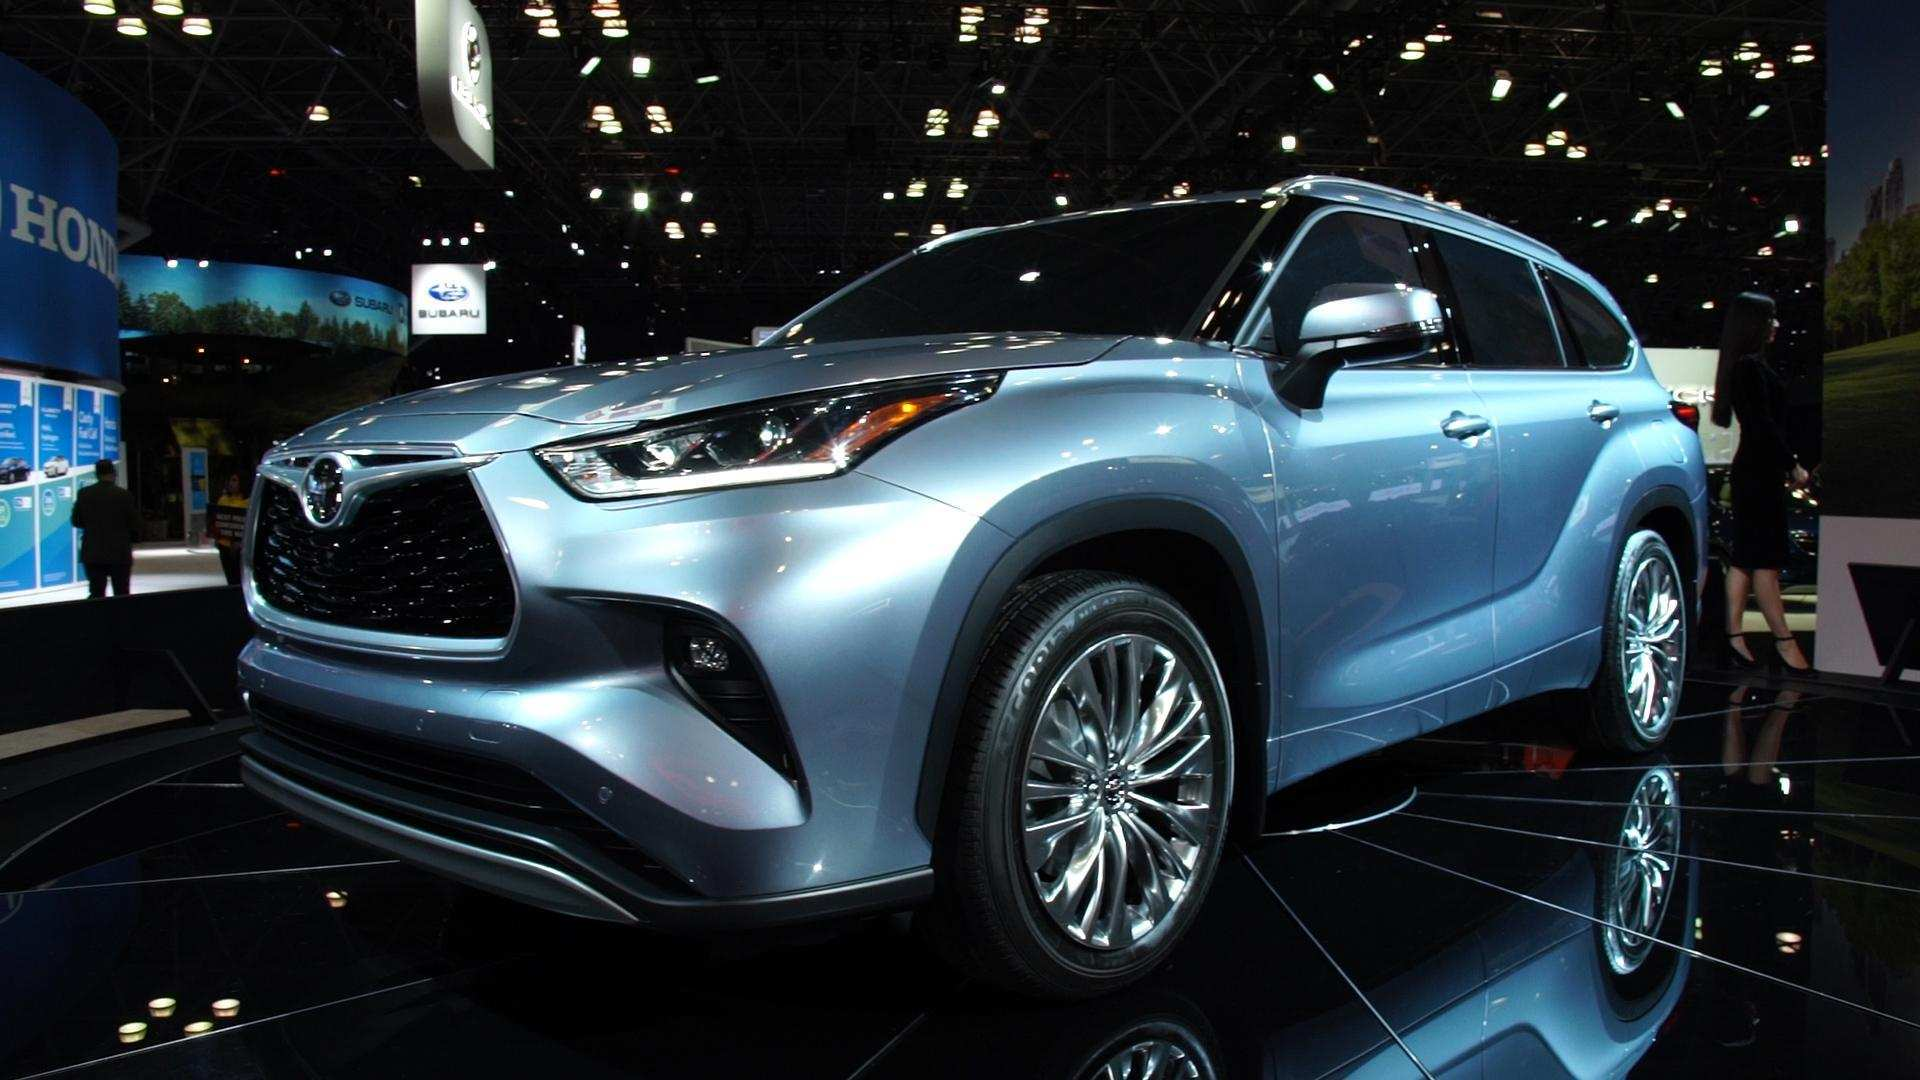 55 Gallery of Toyota Kluger New 2020 Interior by Toyota Kluger New 2020